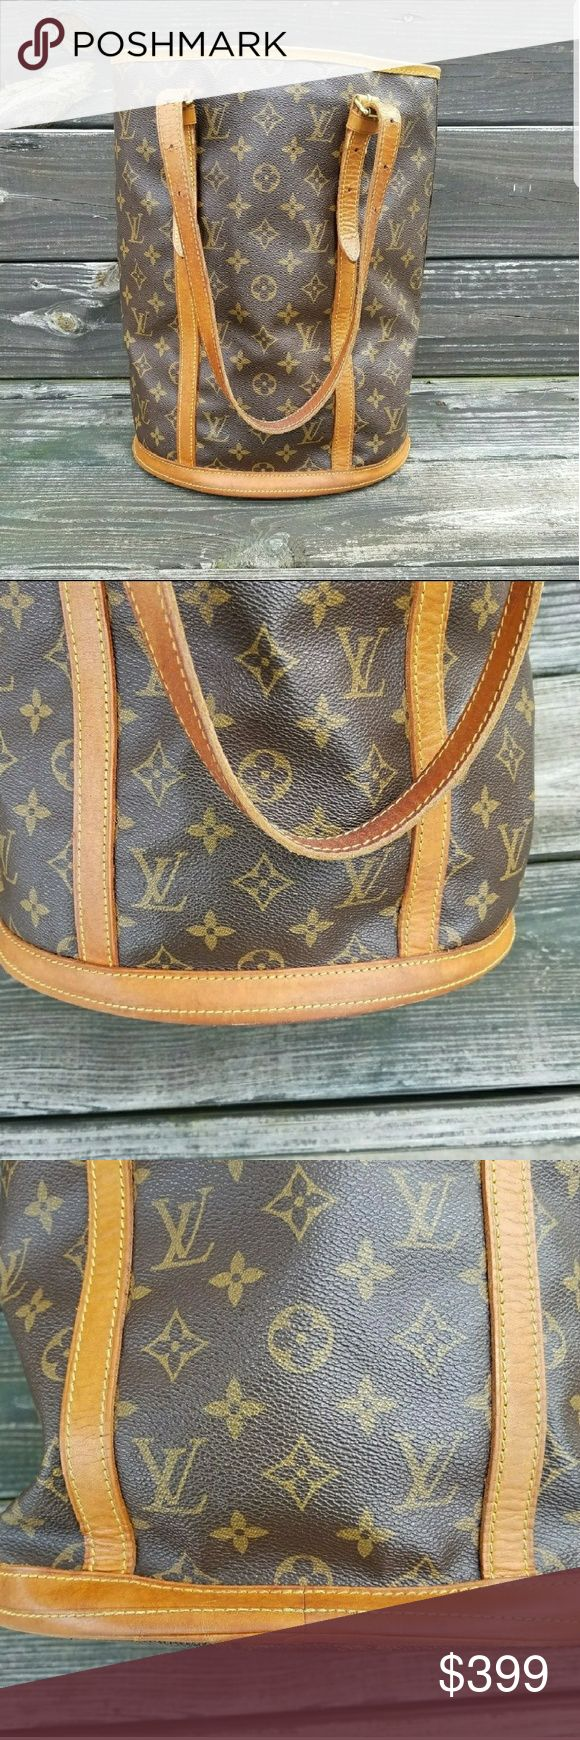 Louis Vuitton Bucket Bag 👜❤👜❤Authentic Louis Vuitton GM bucket bag.  Good used condition.  Leather has minimal staining and watermarks.  Leather straps show normal signs of wear for age of bag.  Vinyl is in great condition with no rips, cracks, tears or scuff marks.  Interior lining is like new.  No rips, tears, peeling, stains or stickiness.  This is a great classic bag with a lot of life left in it. Louis Vuitton Bags